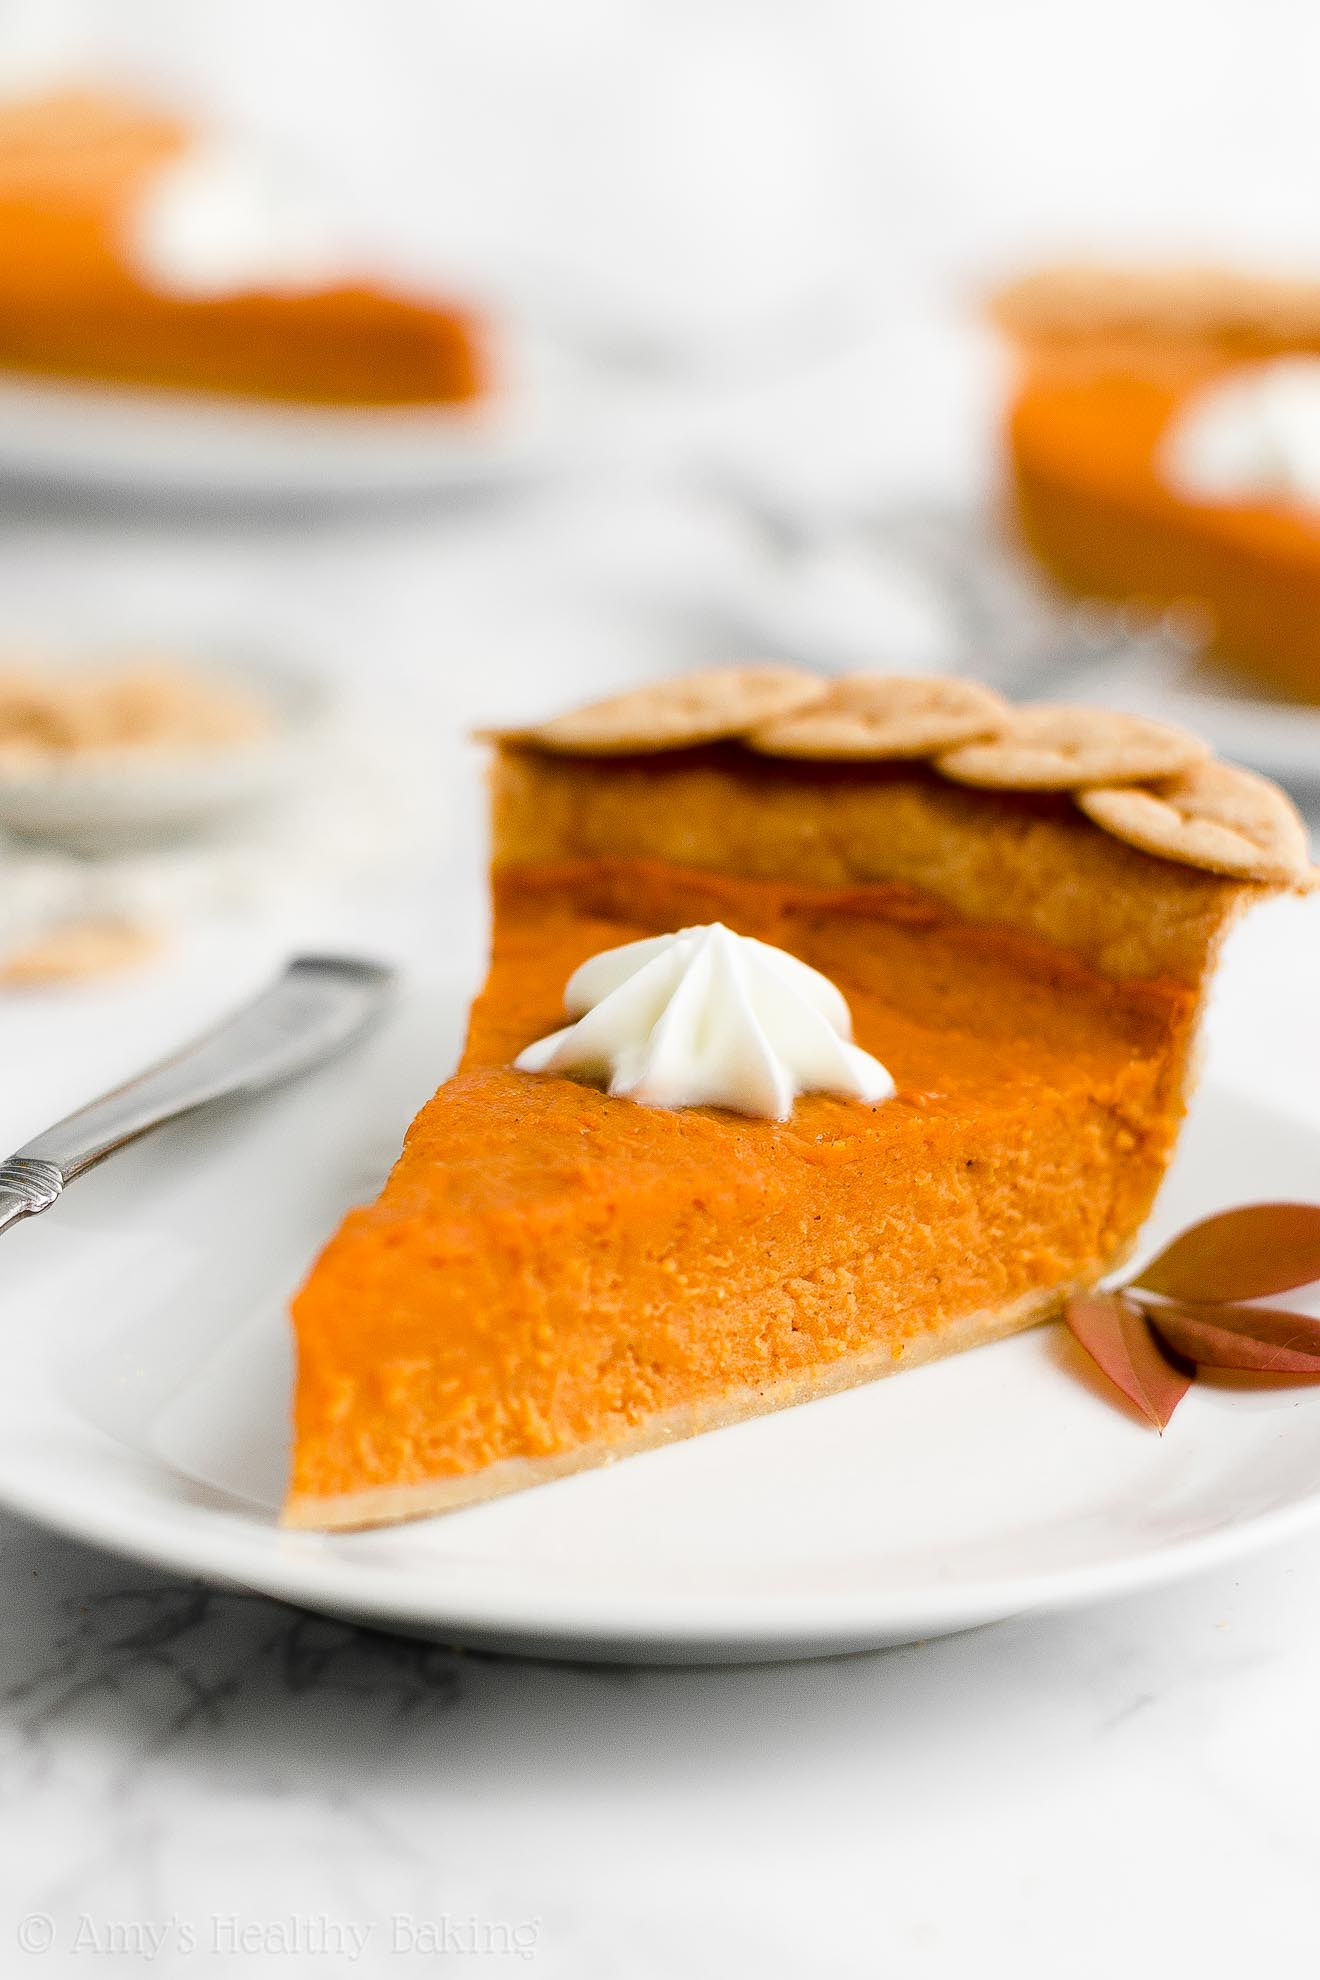 ULTIMATE Best Ever Healthy Vegan Gluten Free No Sugar Sweet Potato Pie